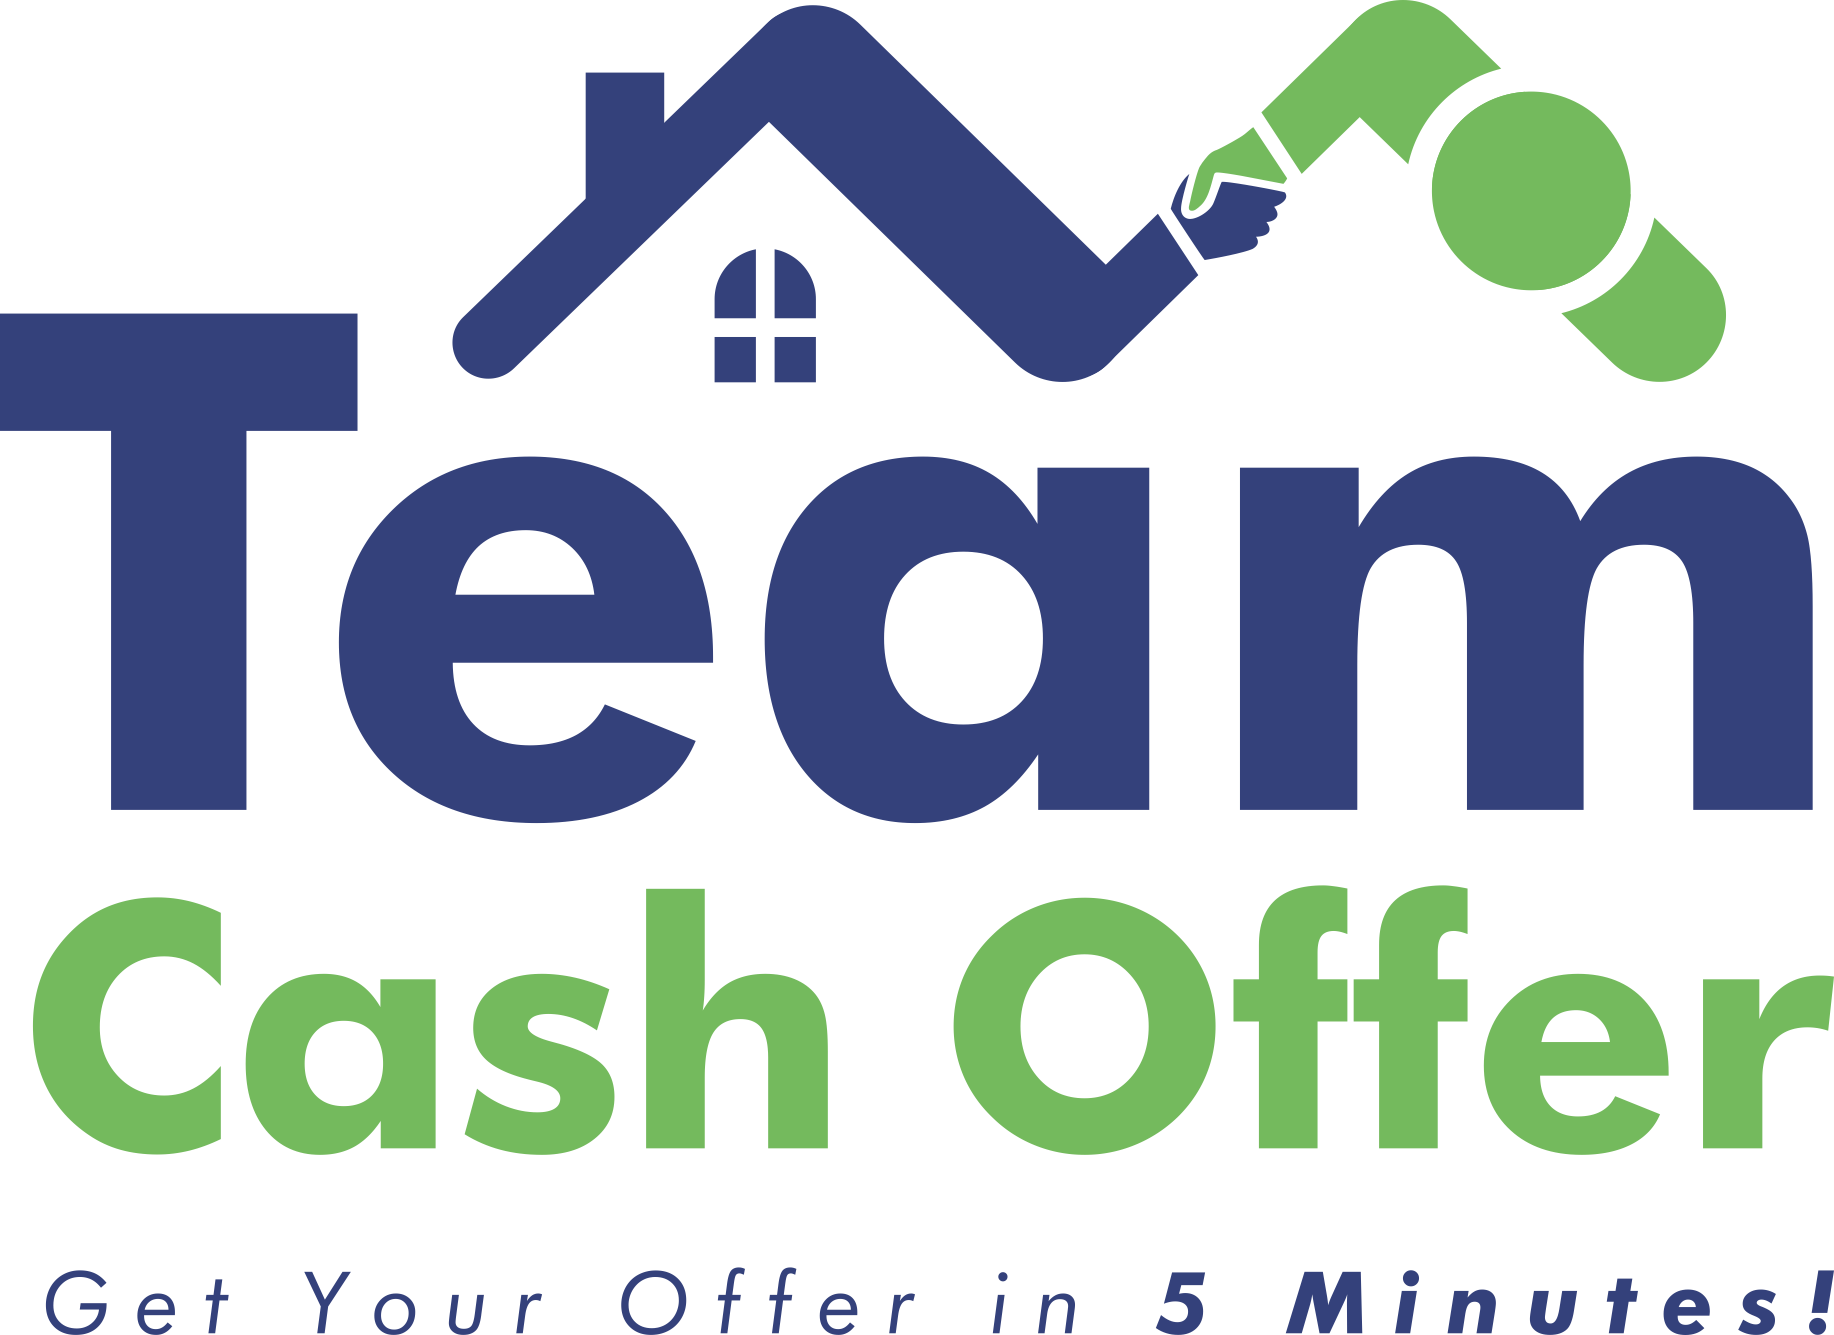 Team Cash Offer logo